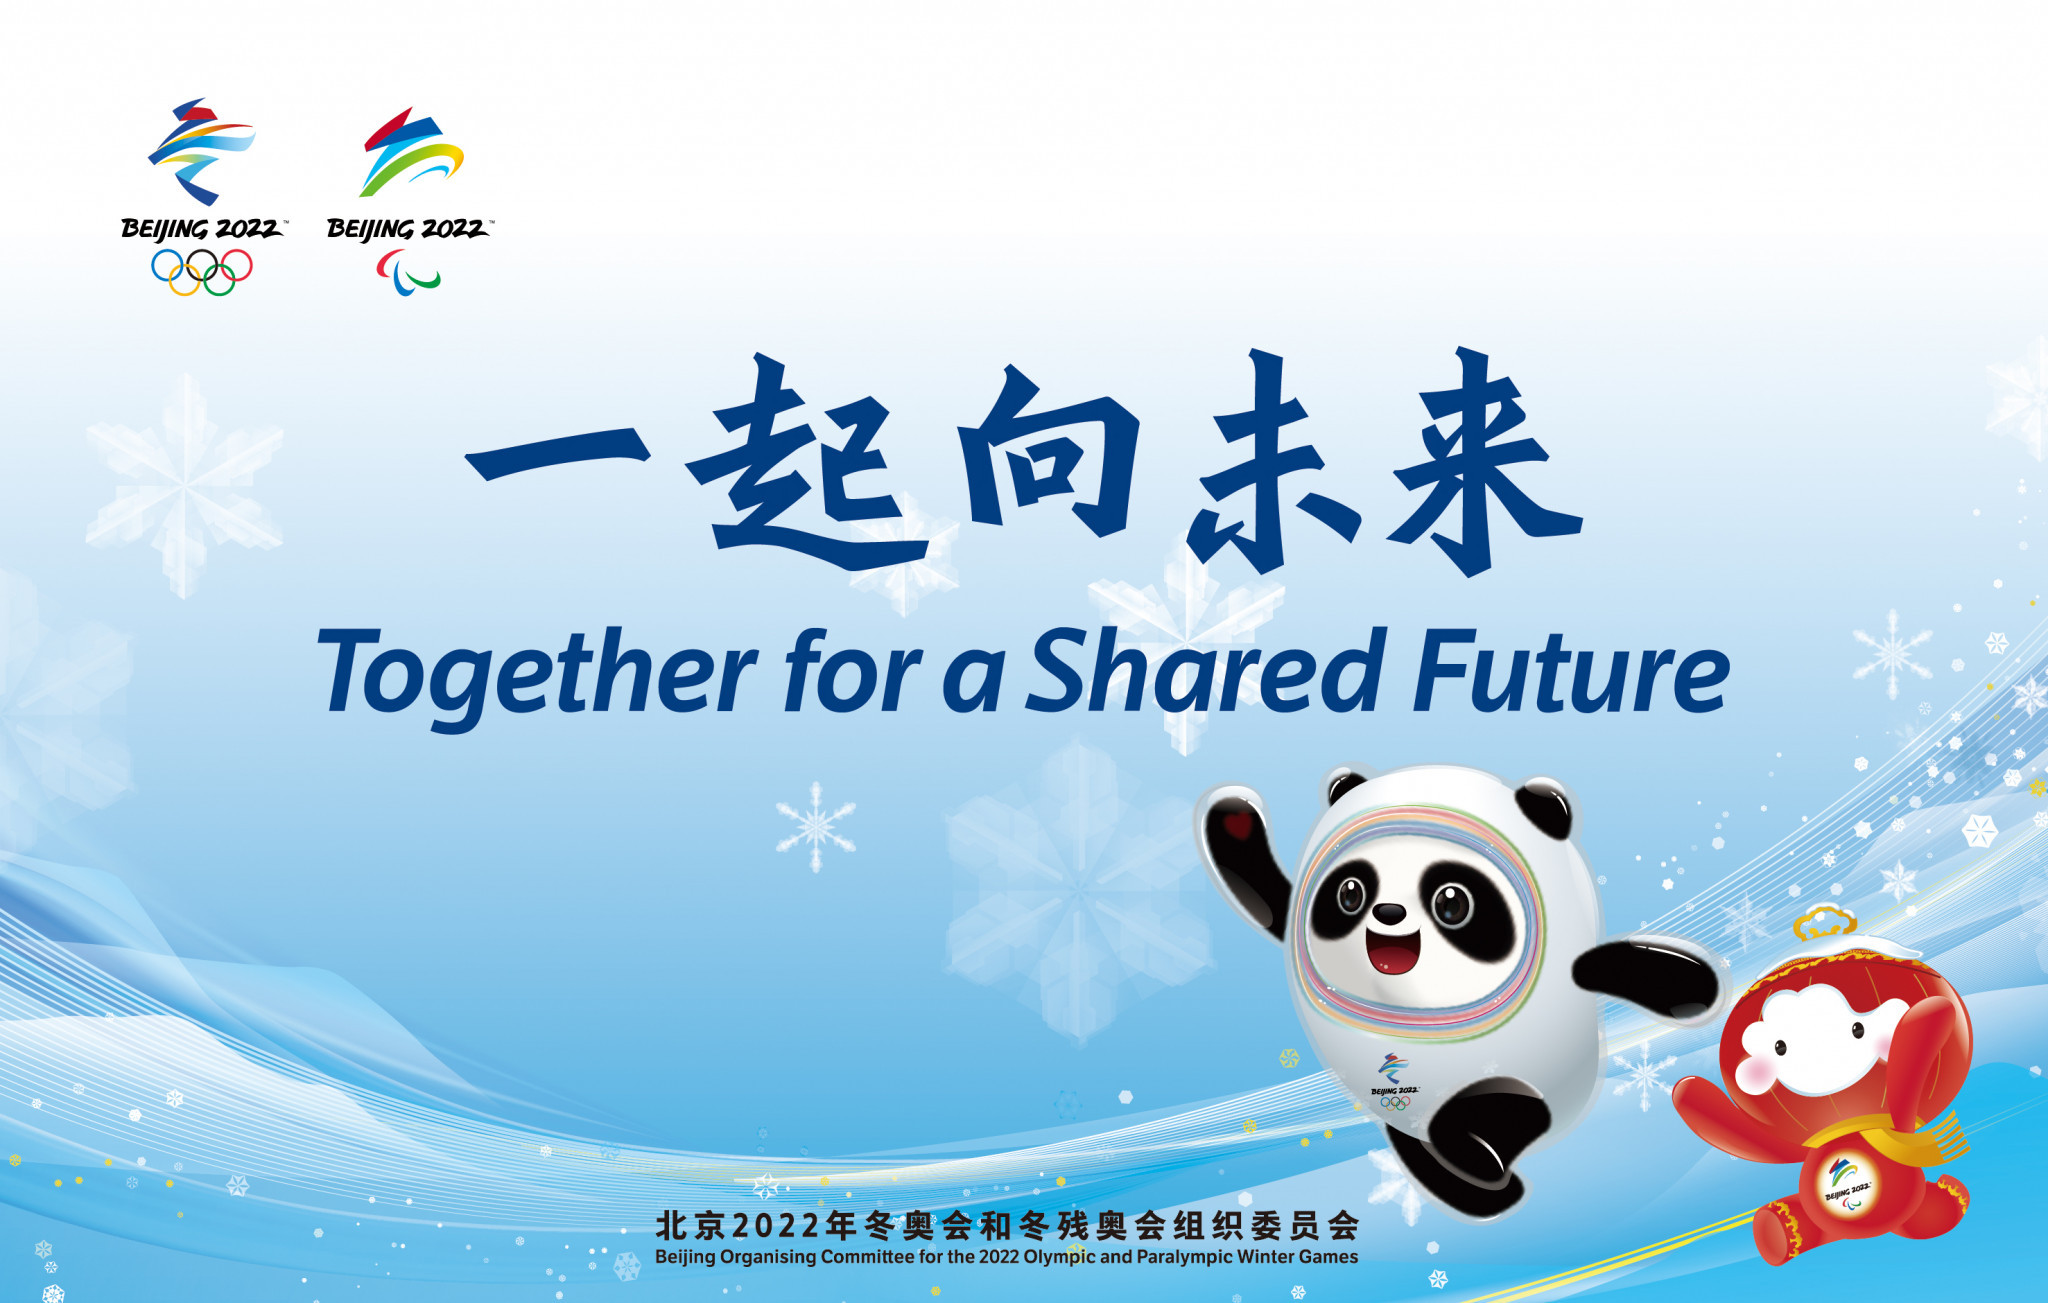 """Beijing 2022 unveils official motto """"Together for a Shared Future"""""""